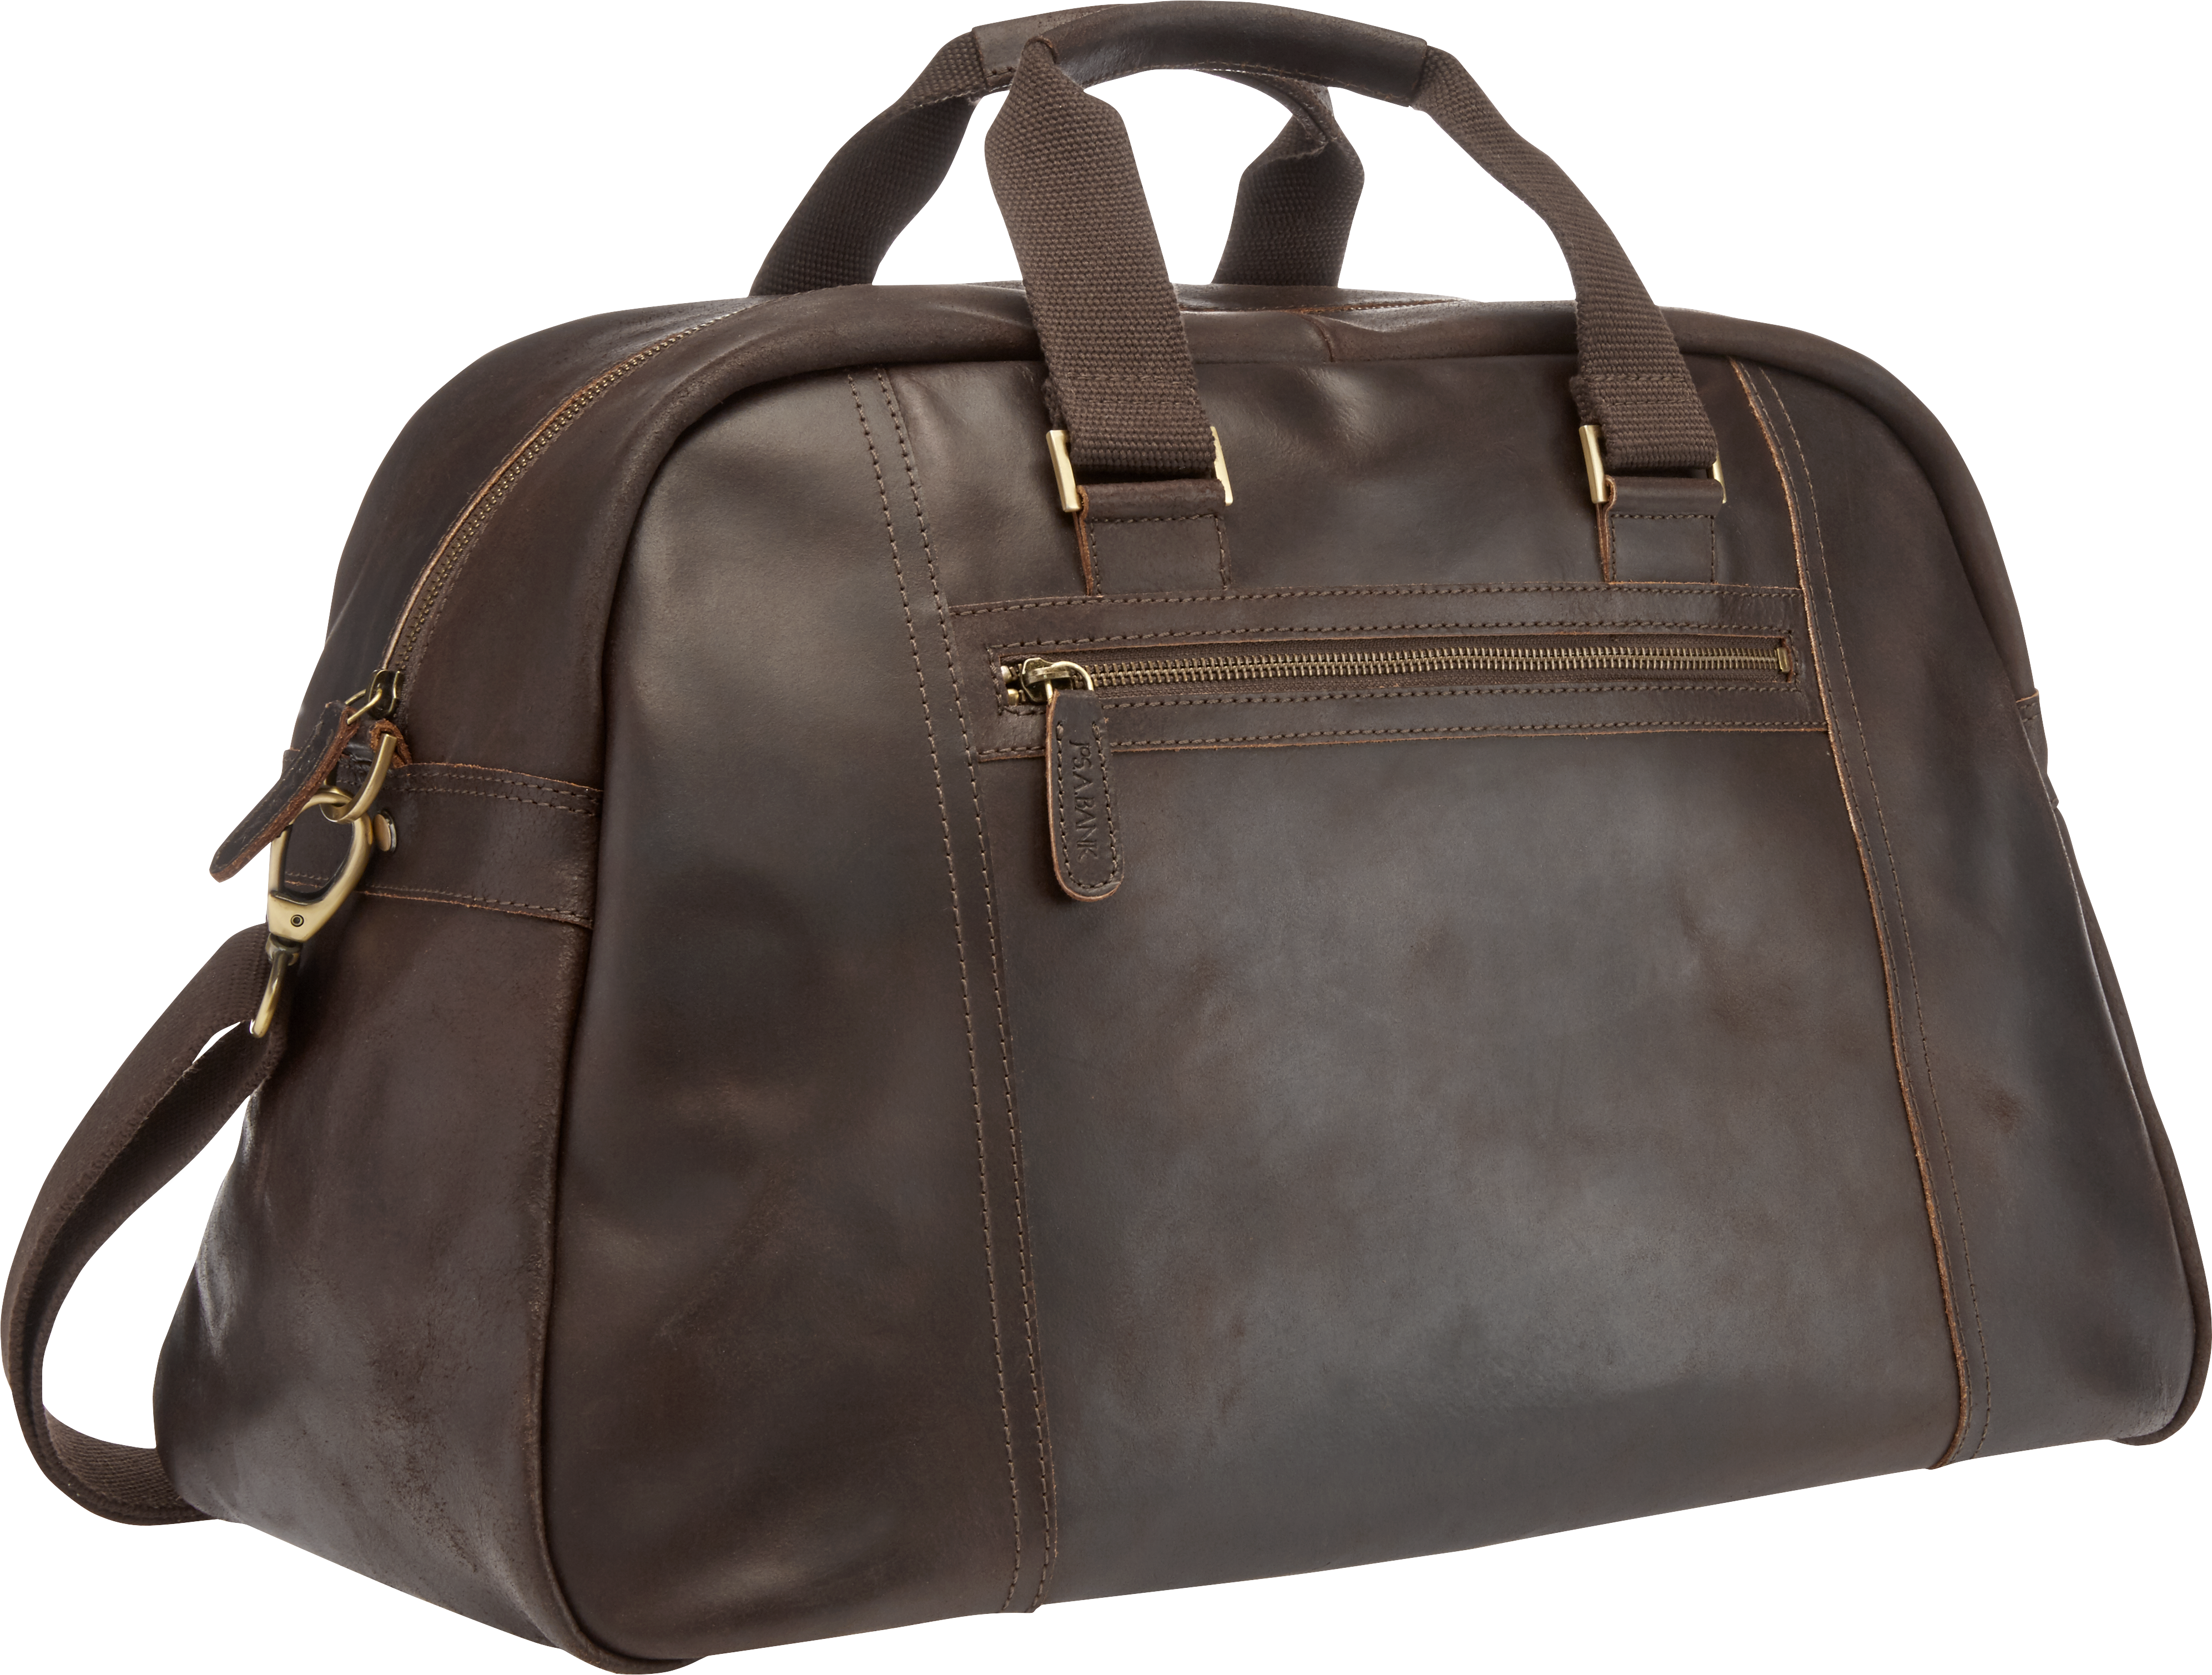 e4be998ae Jos. A. Bank Leather Duffel Bag CLEARANCE - All Clearance | Jos A Bank